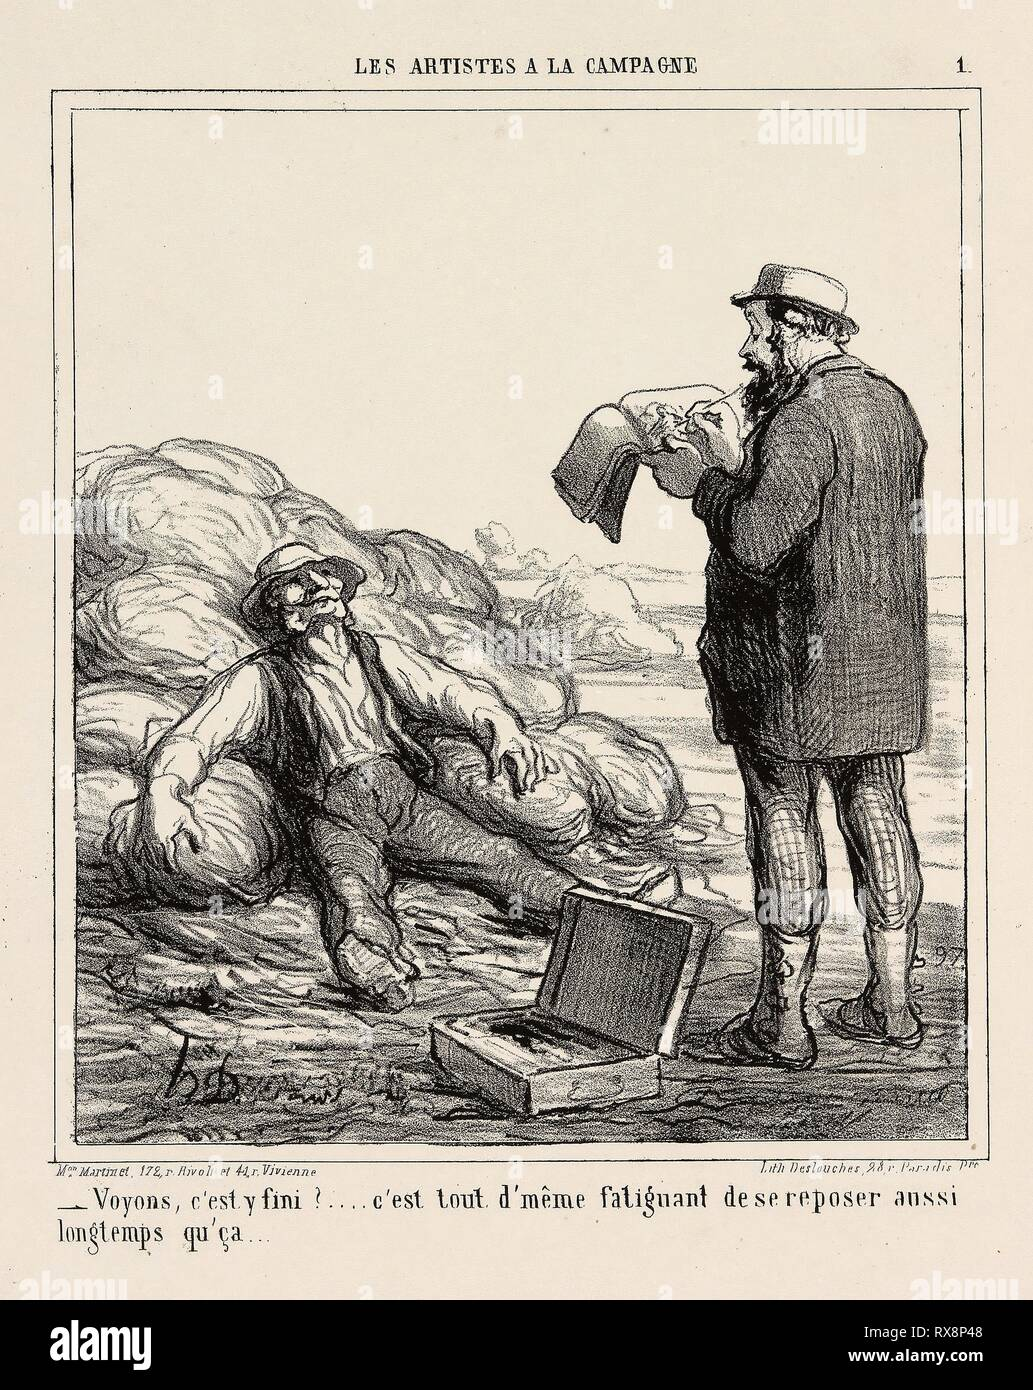 '- Well, are you finally finished?... after all it's tiring to relax for such a long time,' plate 1 from Les Artistes A La Campagne. Honoré Victorin Daumier; French, 1808-1879. Date: 1865. Dimensions: 230 × 200 mm (image); 362 × 273 mm (sheet). Lithograph in black on ivory wove paper. Origin: France. Museum: The Chicago Art Institute. Author: Honoré-Victorin Daumier. - Stock Image